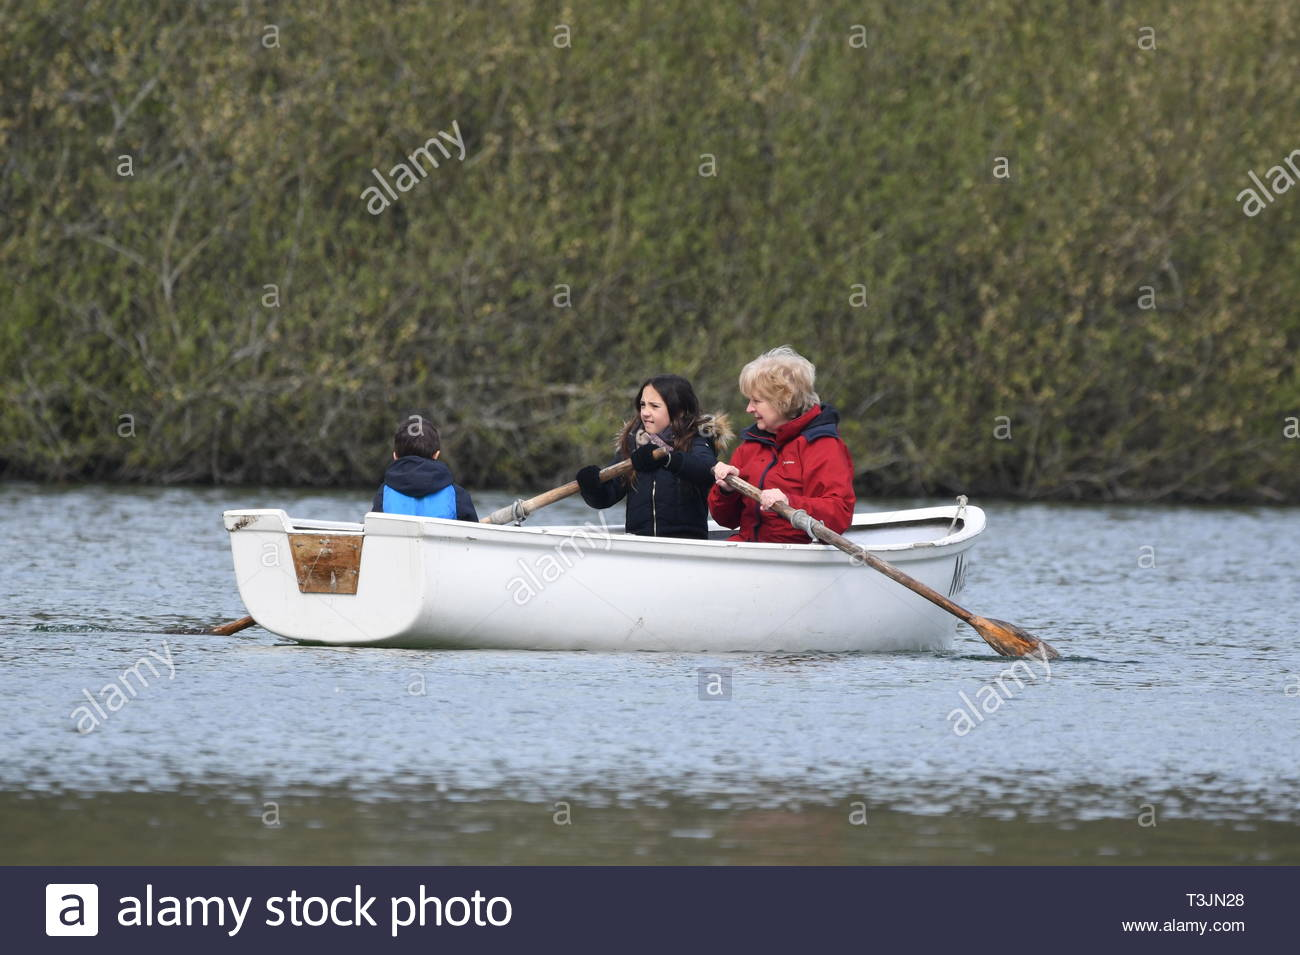 Arundel, West Sussex, UK. Wednesday 10th April 2019. People in a rowing boat on Swanbourne Lake on a partly cloudy but bright and cool morning in Arundel, near the South Coast. Credit: Geoff Smith/Alamy Live News - Stock Image